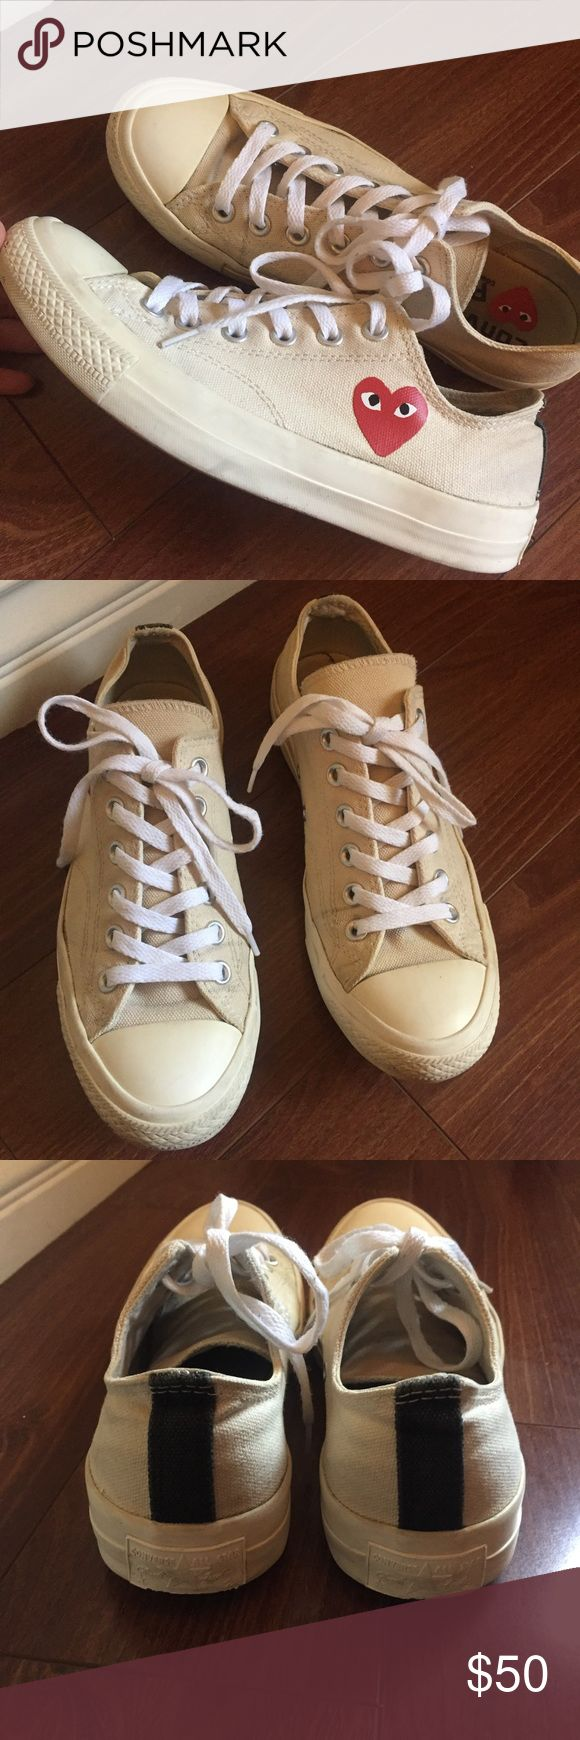 Comme Des Garcon Converse ✨ Comme Des Garçon Converse. Used. These are authentic and purchased from Nordstrom. The color is a creamy canvas color, not supposed to be white. Size womens 8 and mens 6. It comes with the original shoe box as pictured in the last photo but the shoe box has a tear and stain from being in my closet. Feel free to comment any questions. 😊💕 Comme des Garcons Shoes Sneakers